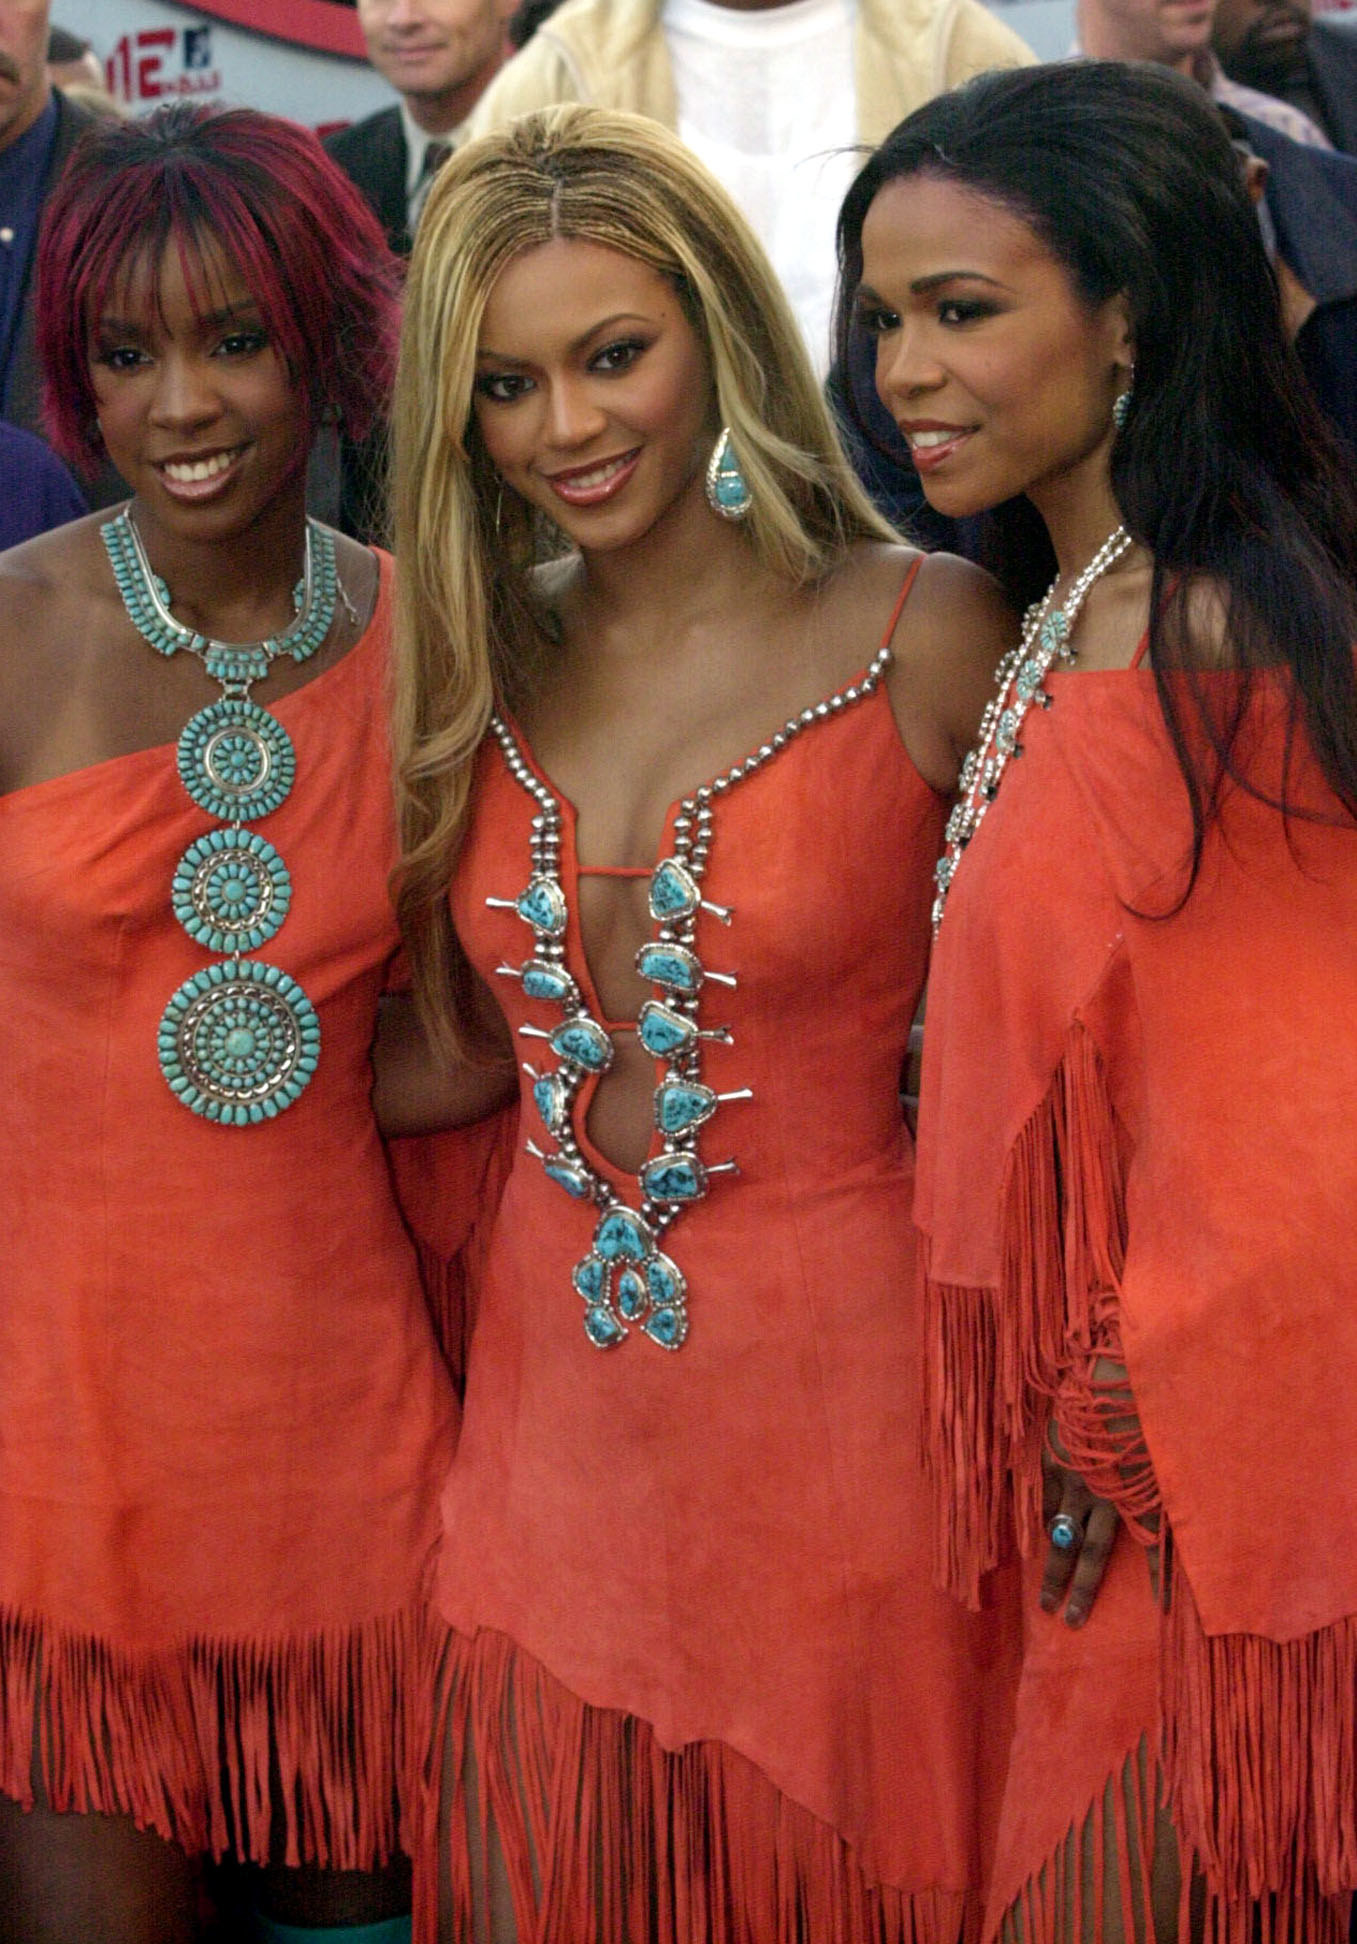 Destiny's Child at the 2001 Video Music Awards